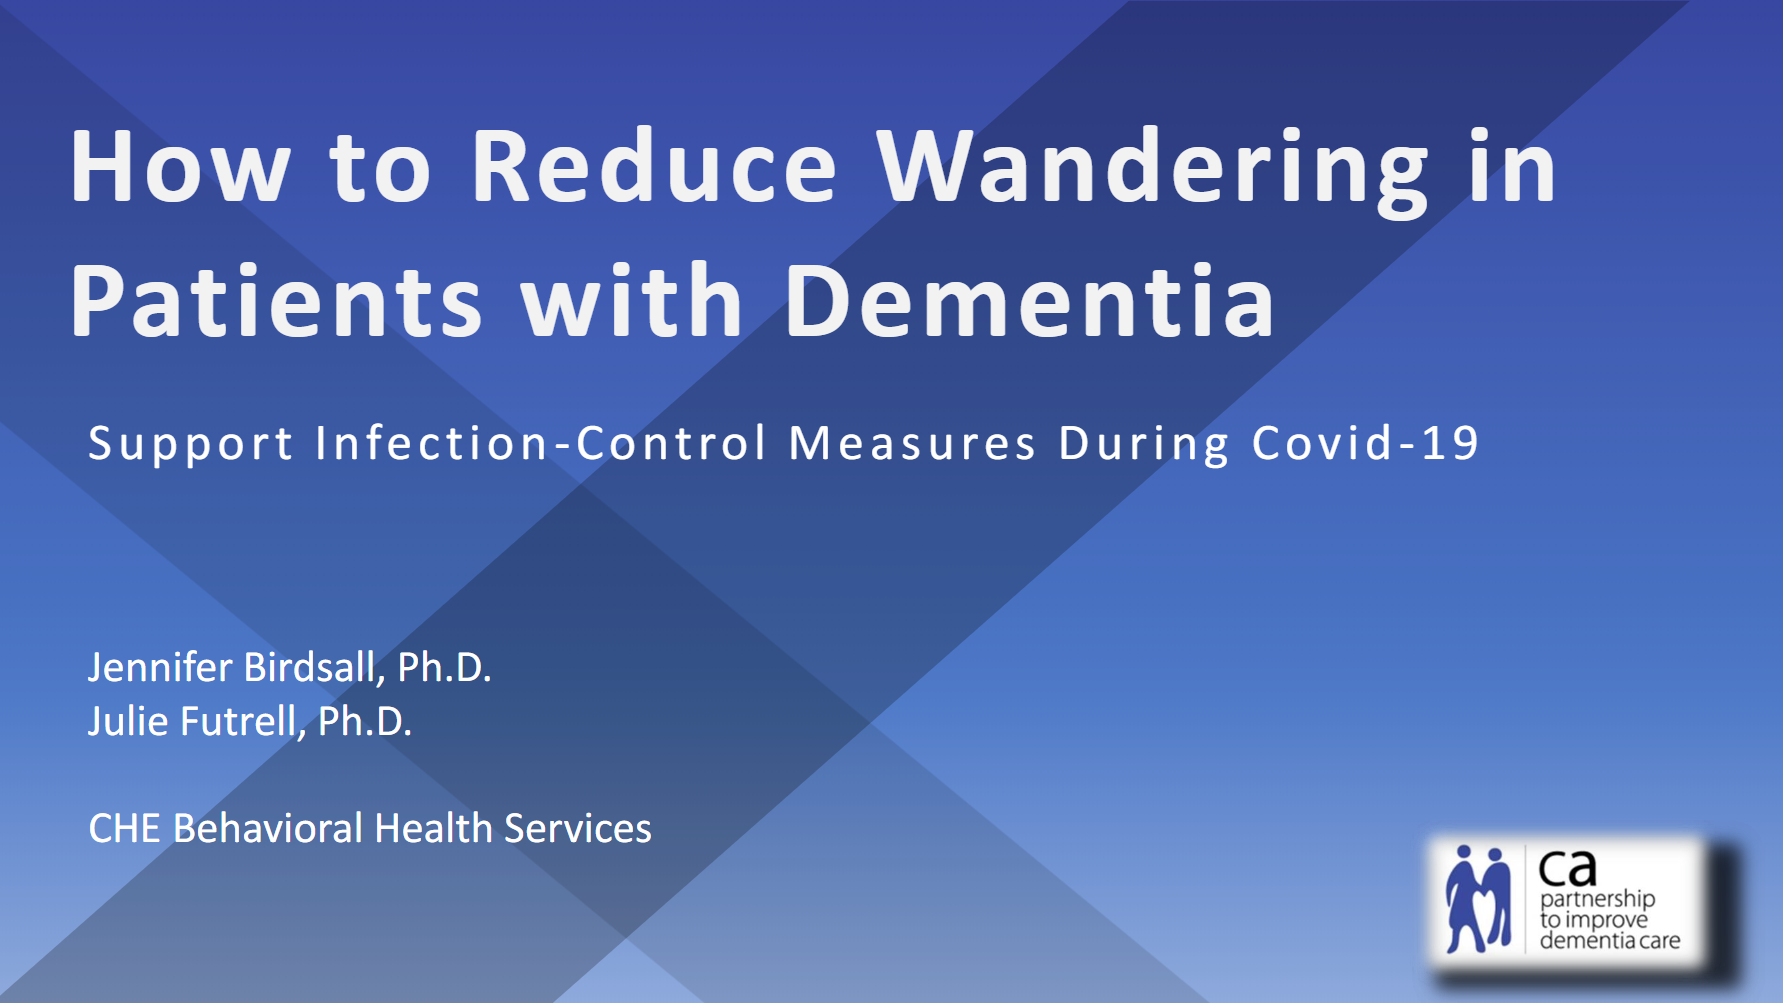 How to Reduce Wandering in Paitients with Dementia